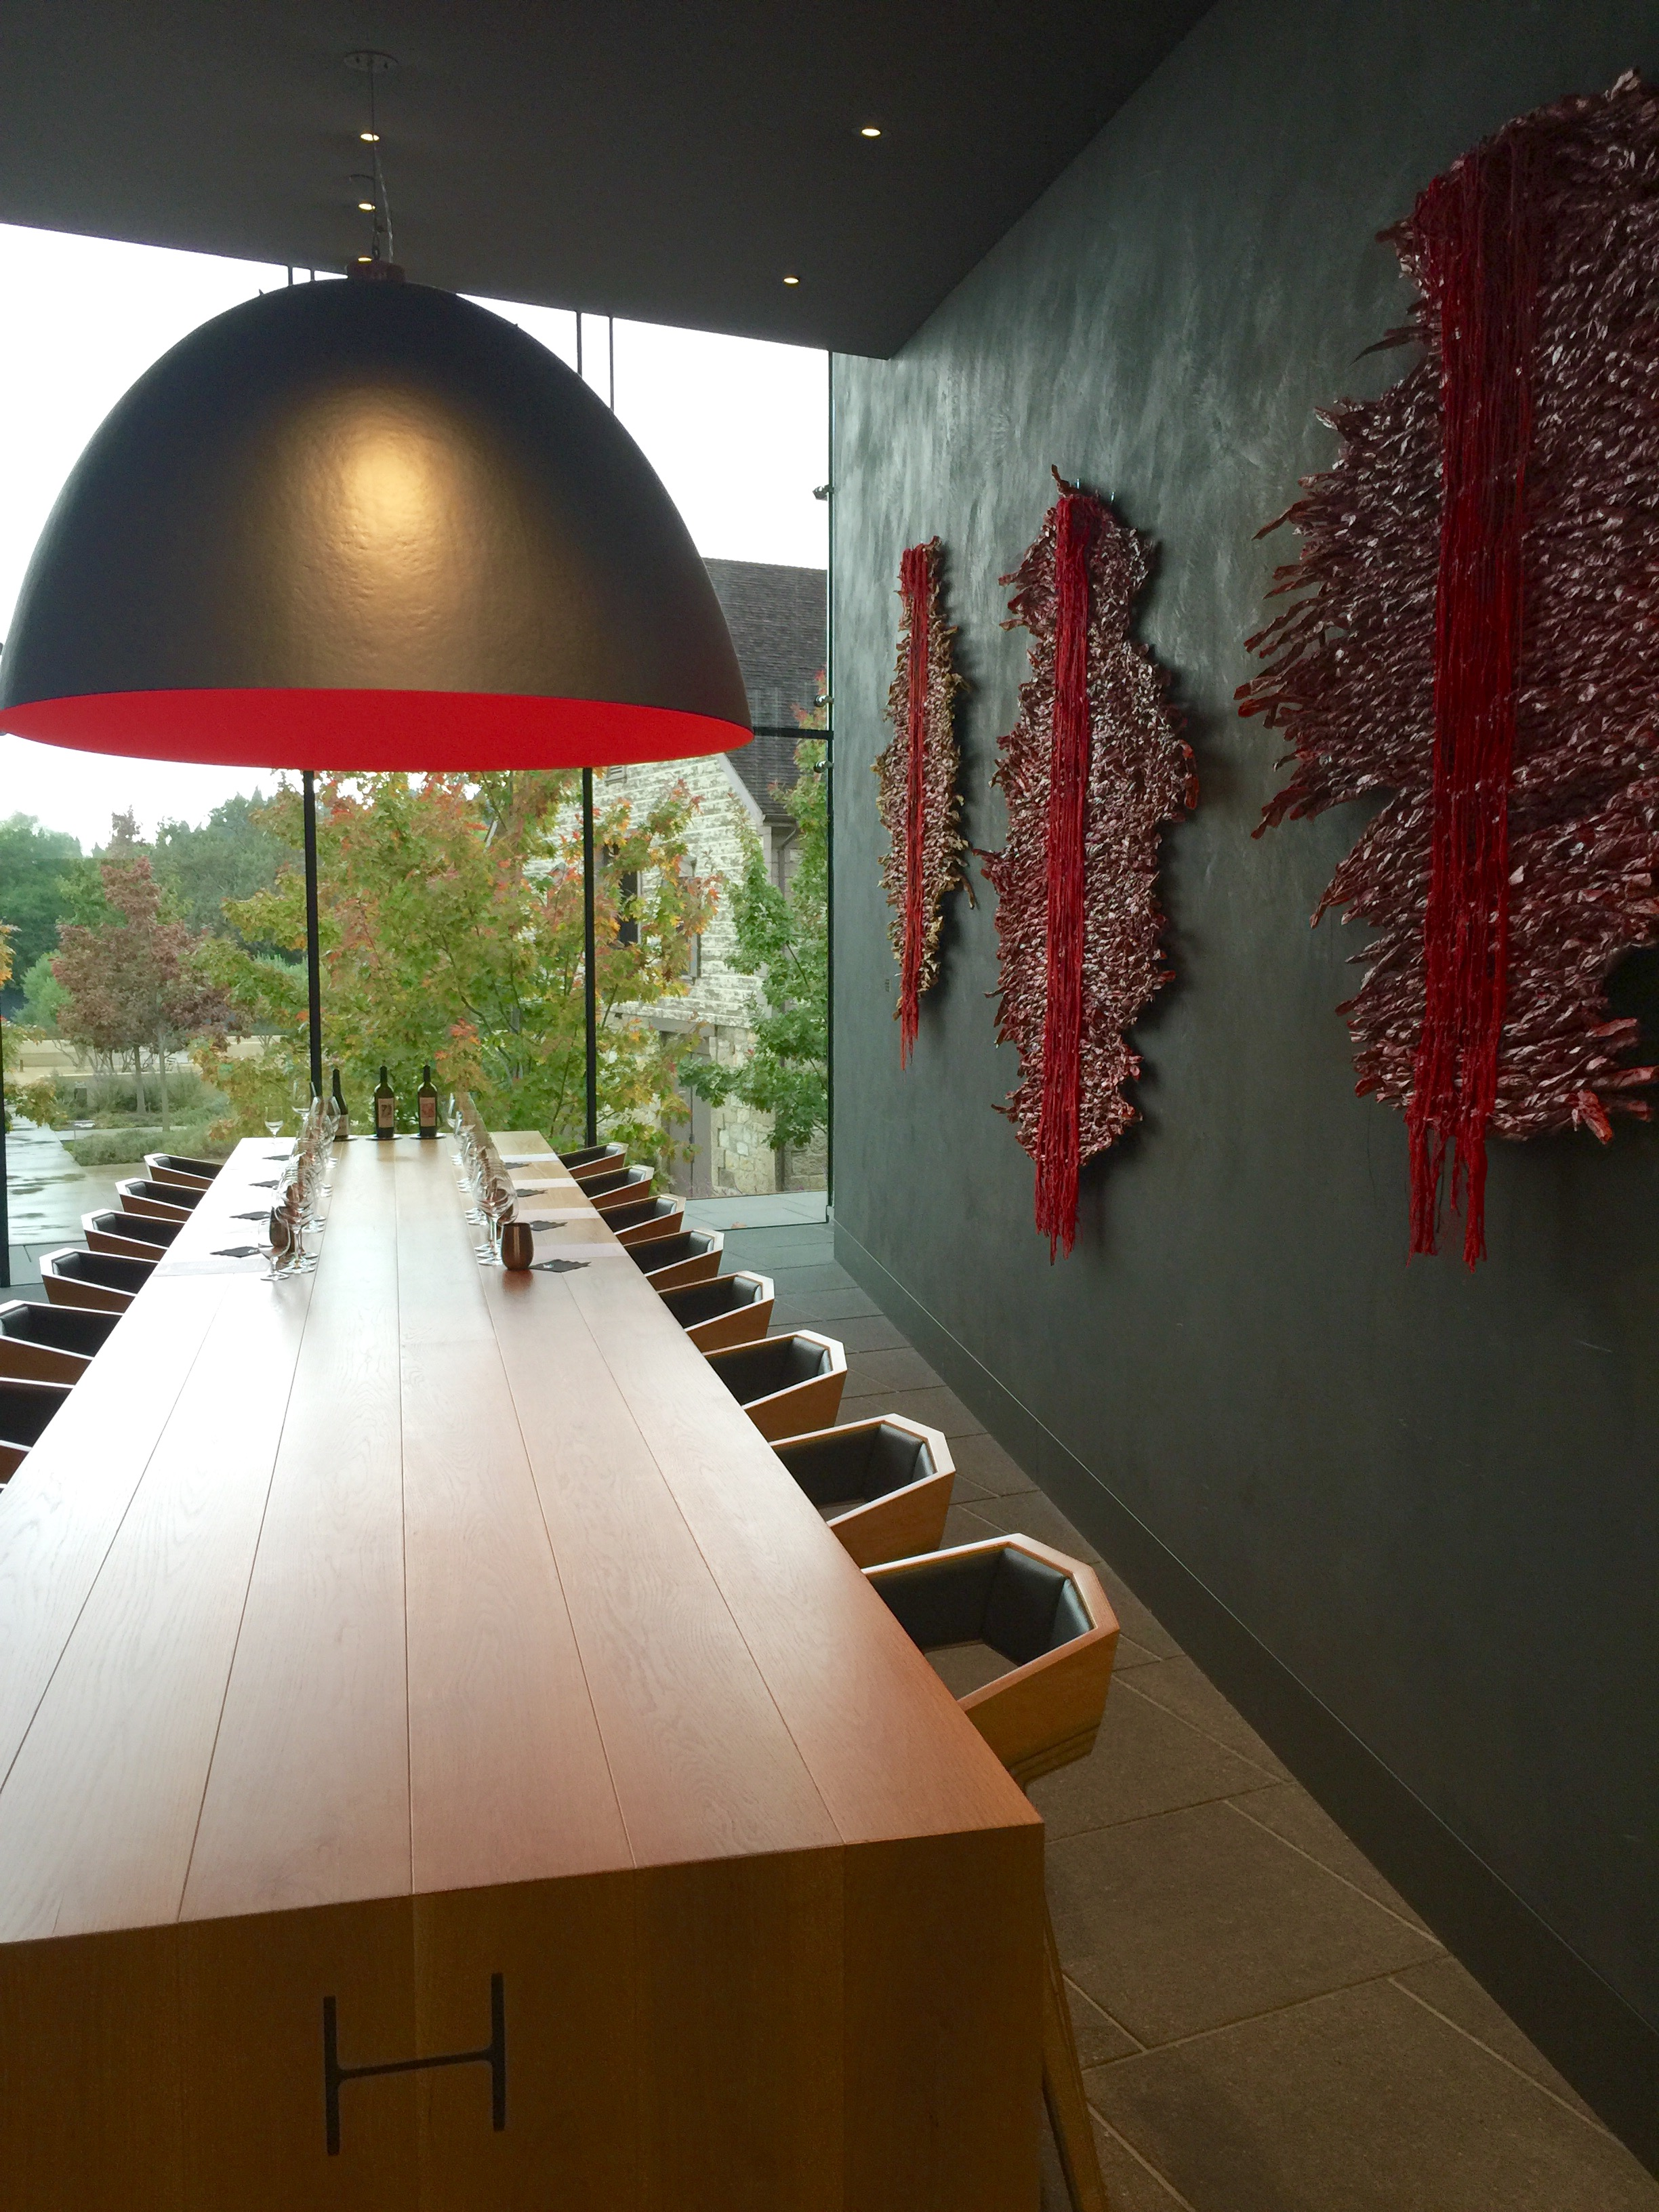 One of the tasting rooms upstairs in the modern building.